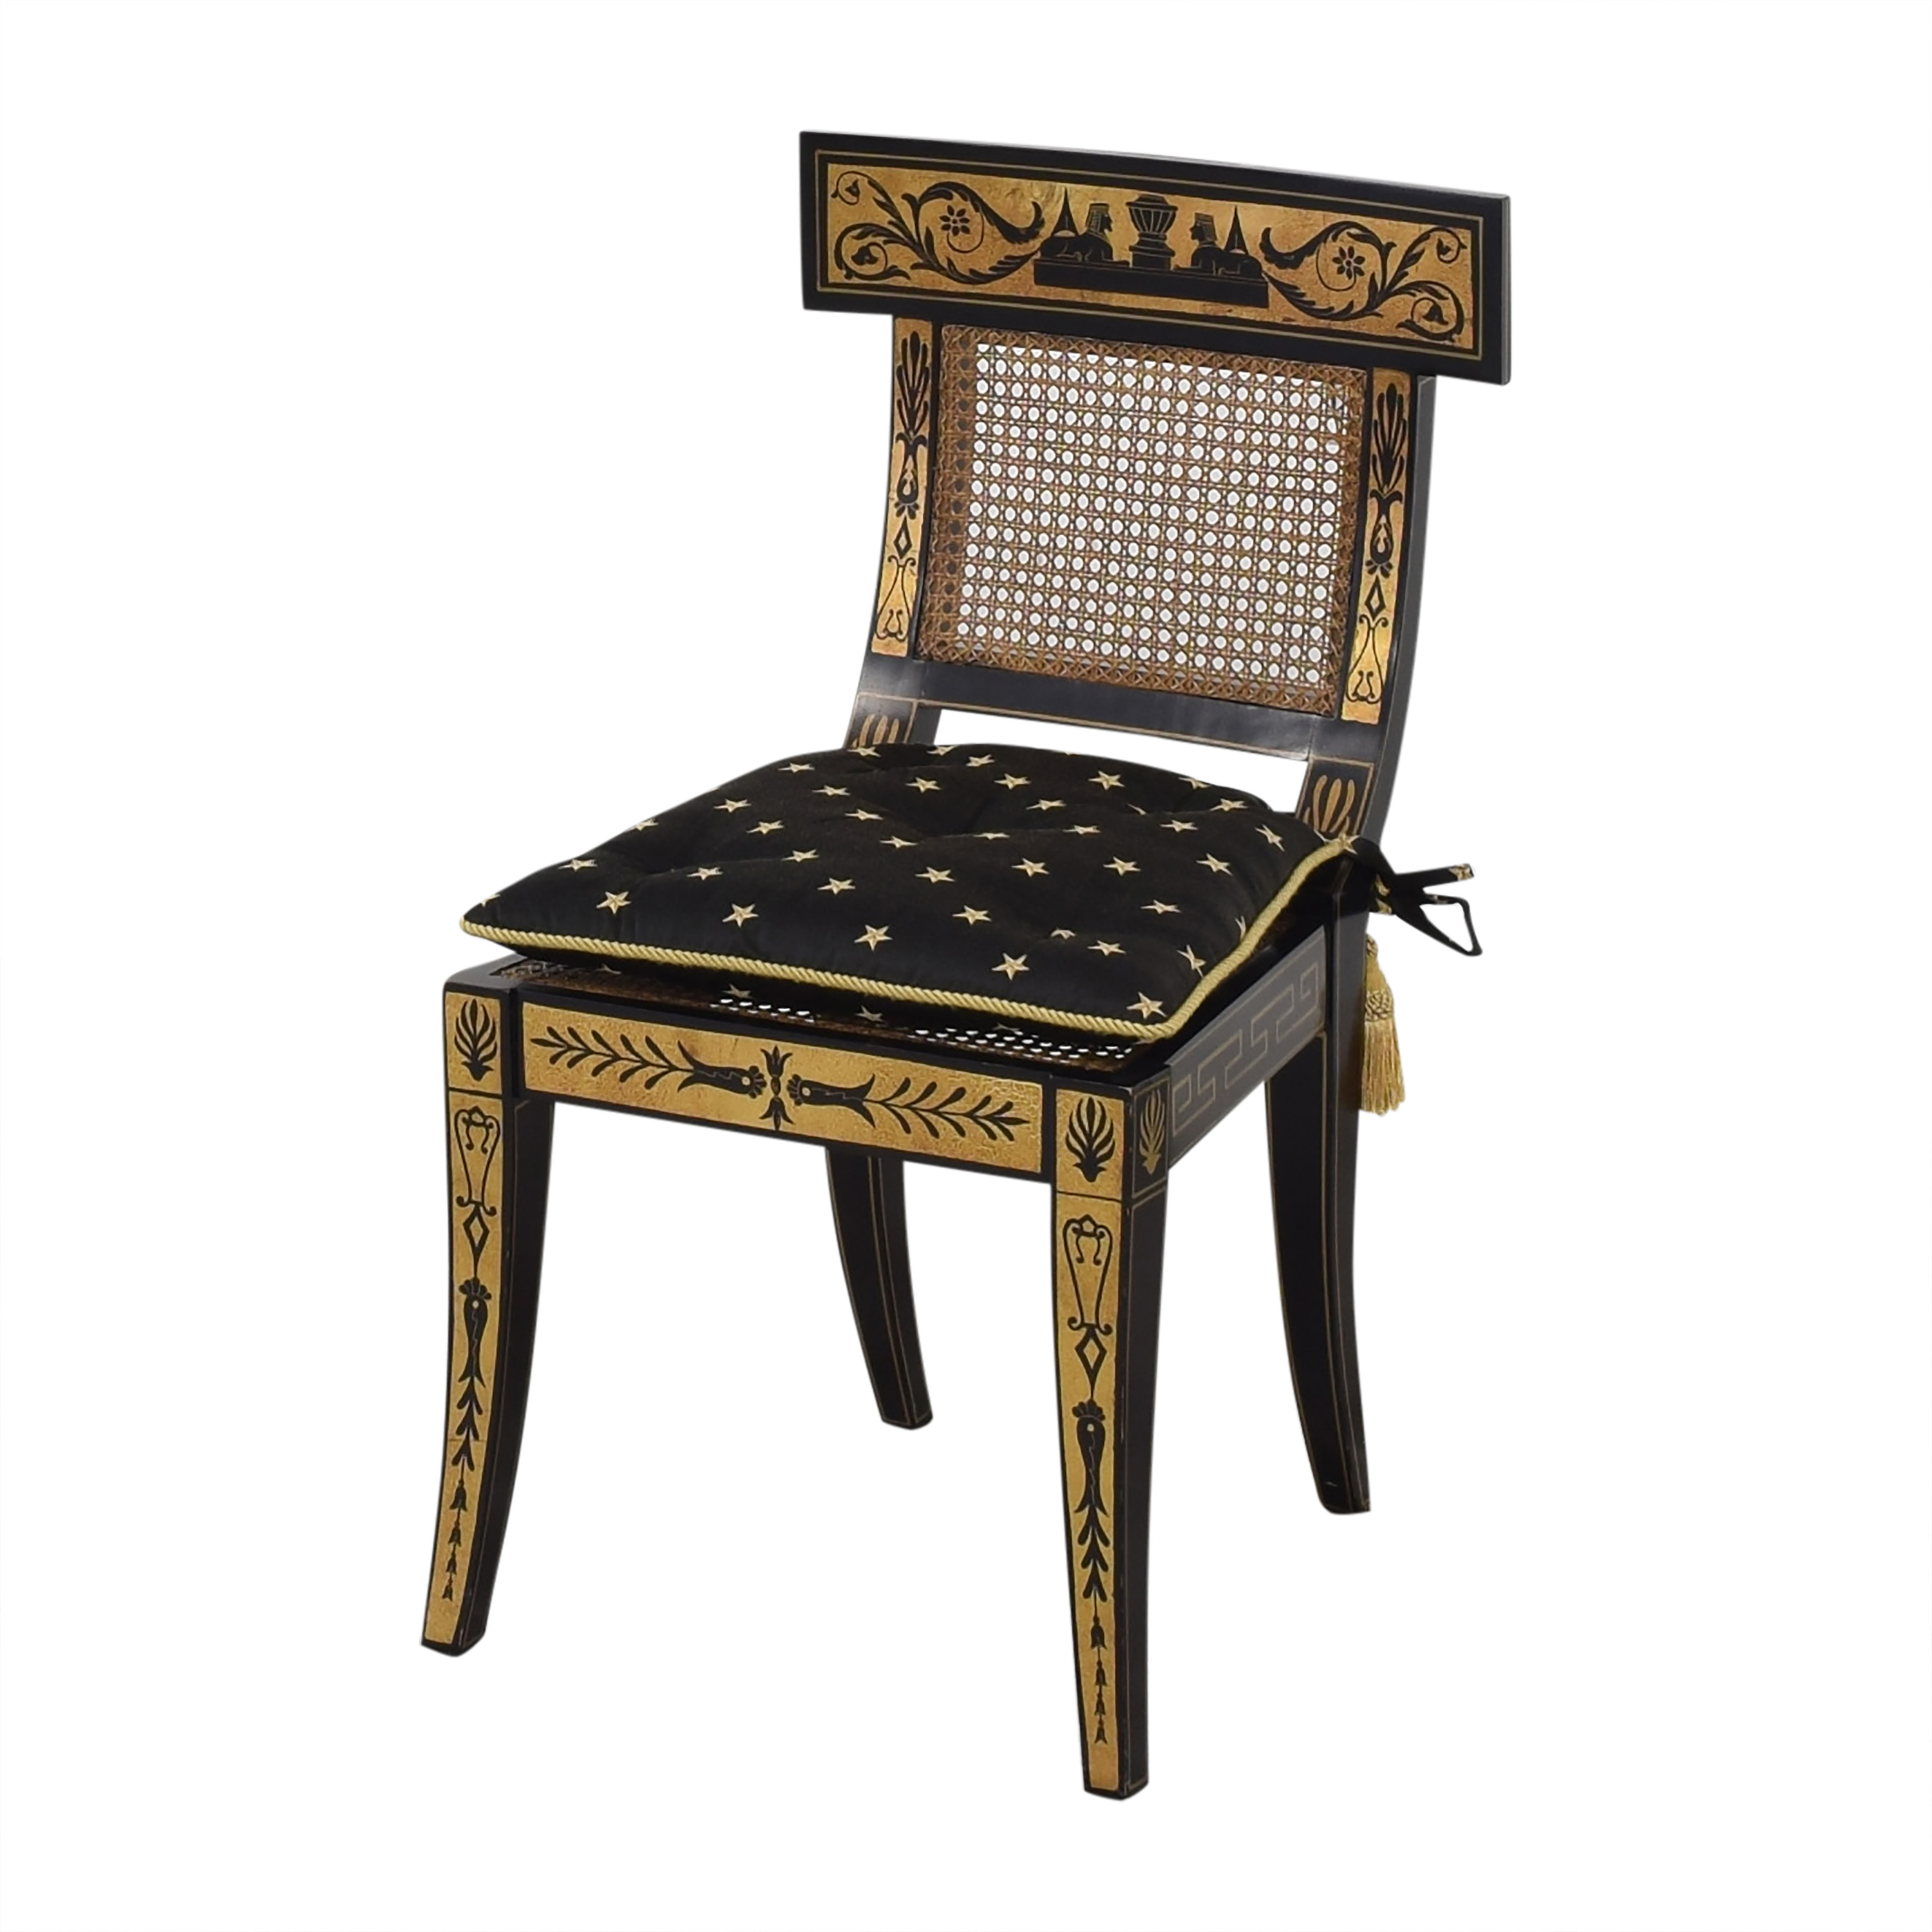 buy Maitland-Smith Maitland-Smith Decorative Dining Chairs with Cushions online